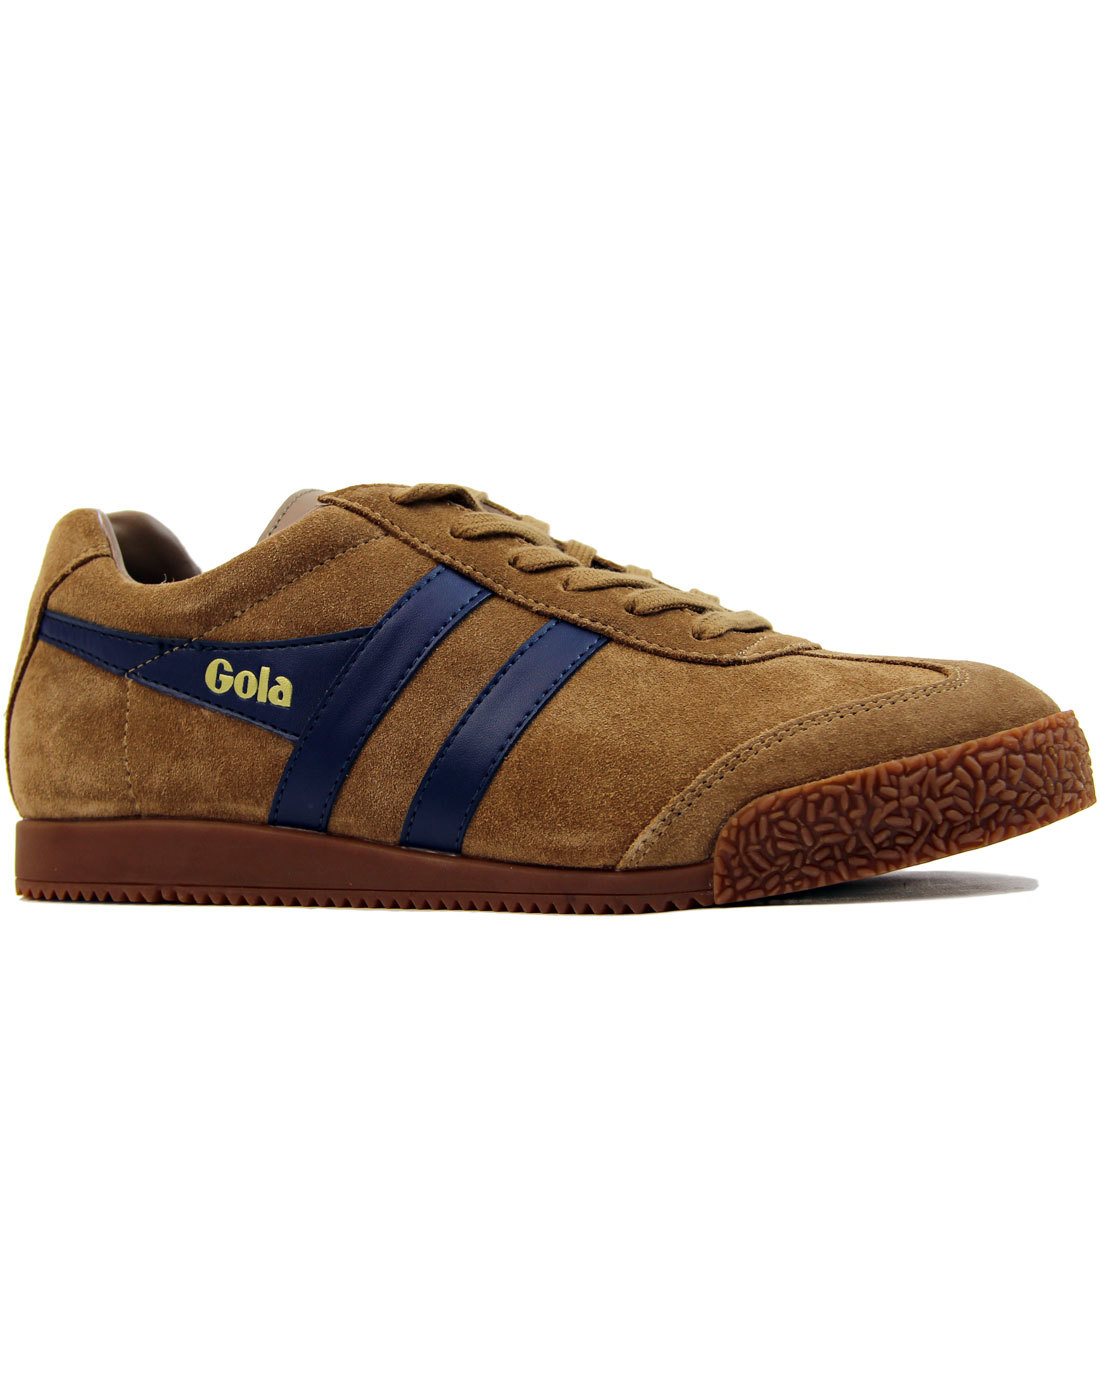 GOLA Harrier Suede Retro 70s Trainers TOBACCO/NAVY